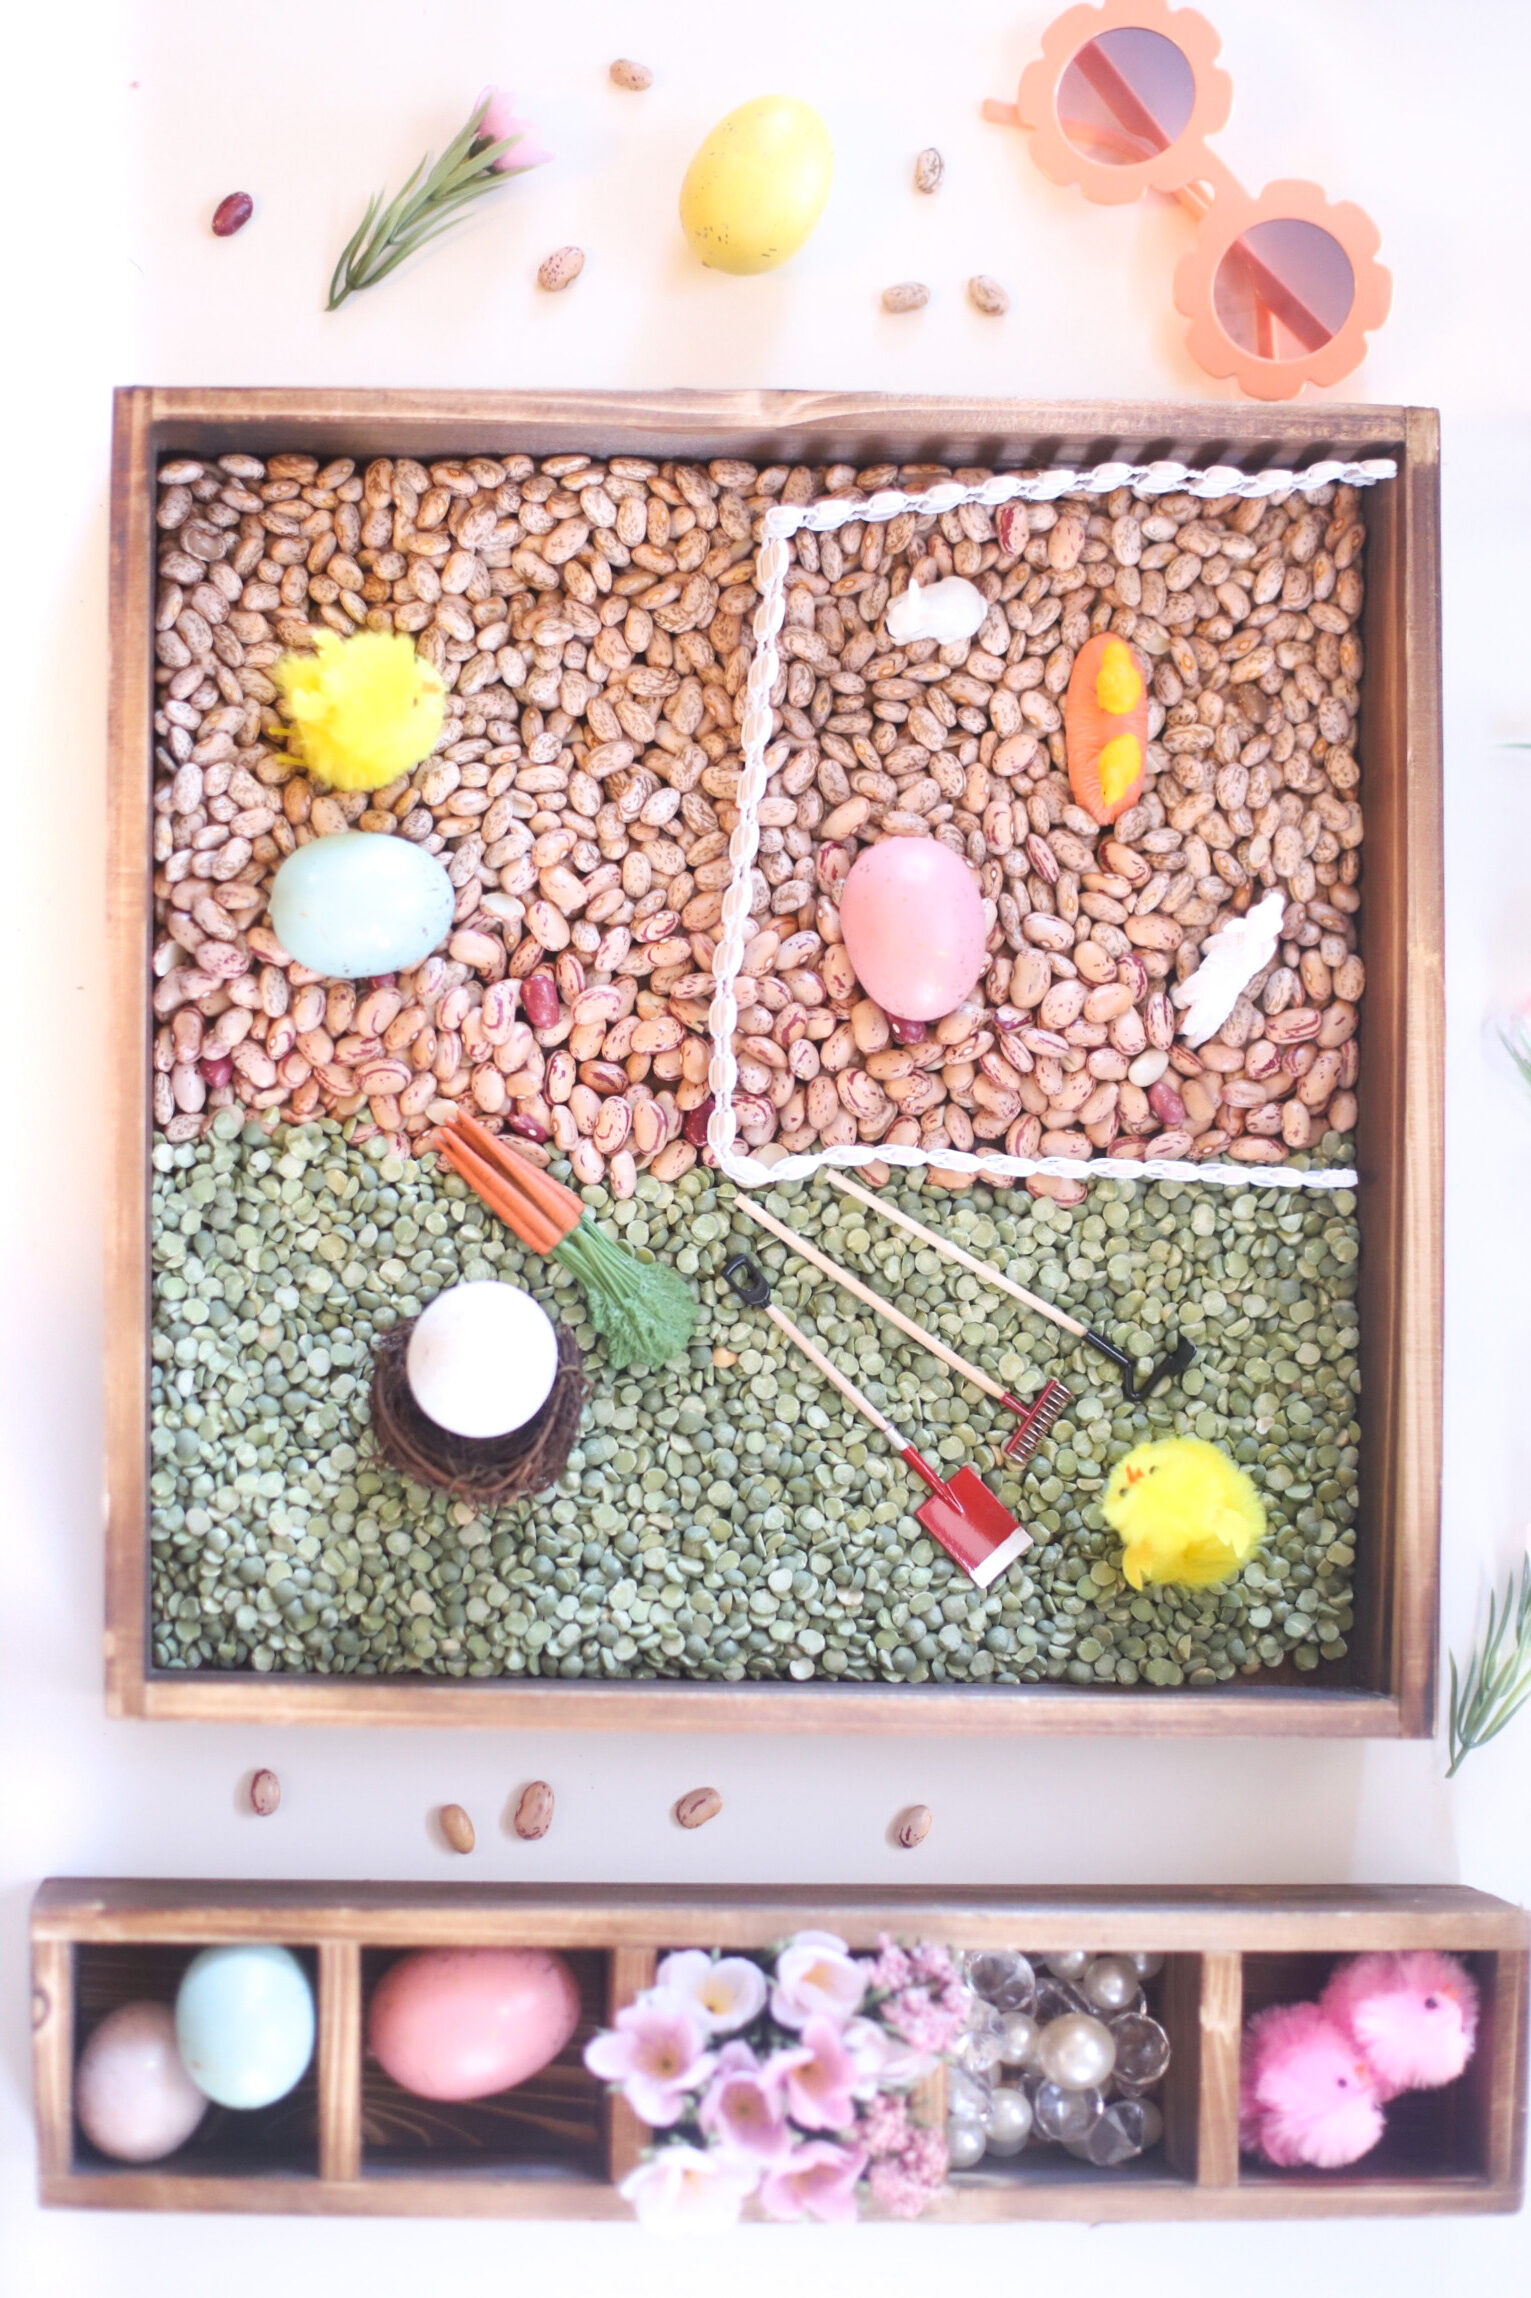 Farmhouse-Inspired Spring Sensory Bins for Kids - The Perfect Hands-On Activity for Toddlers and Beyond| @glitterinclexi | GLITTERINC.COM